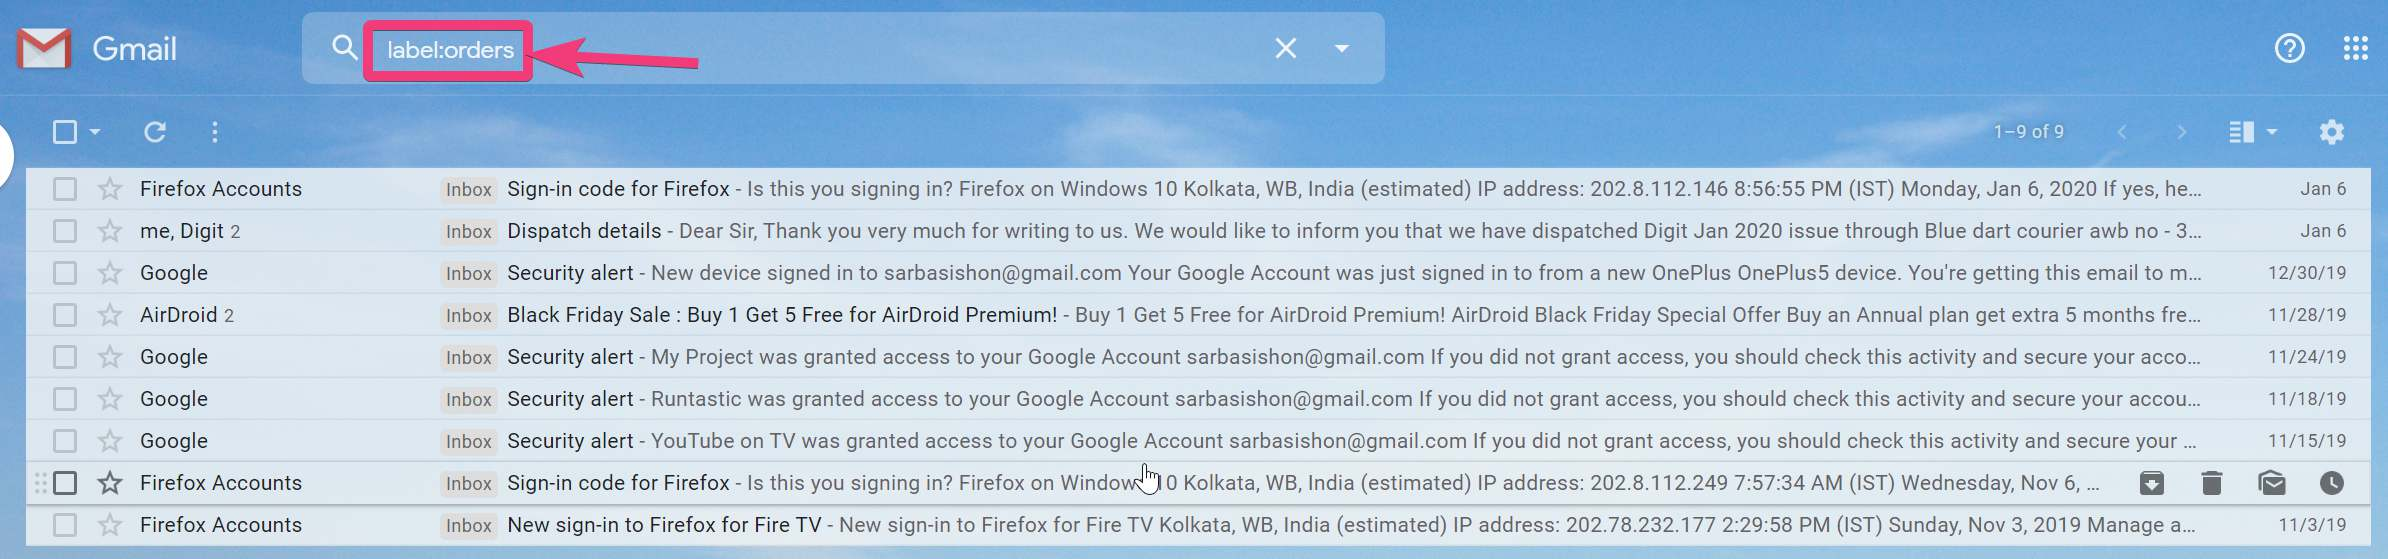 Add labels to emails on Gmail 80